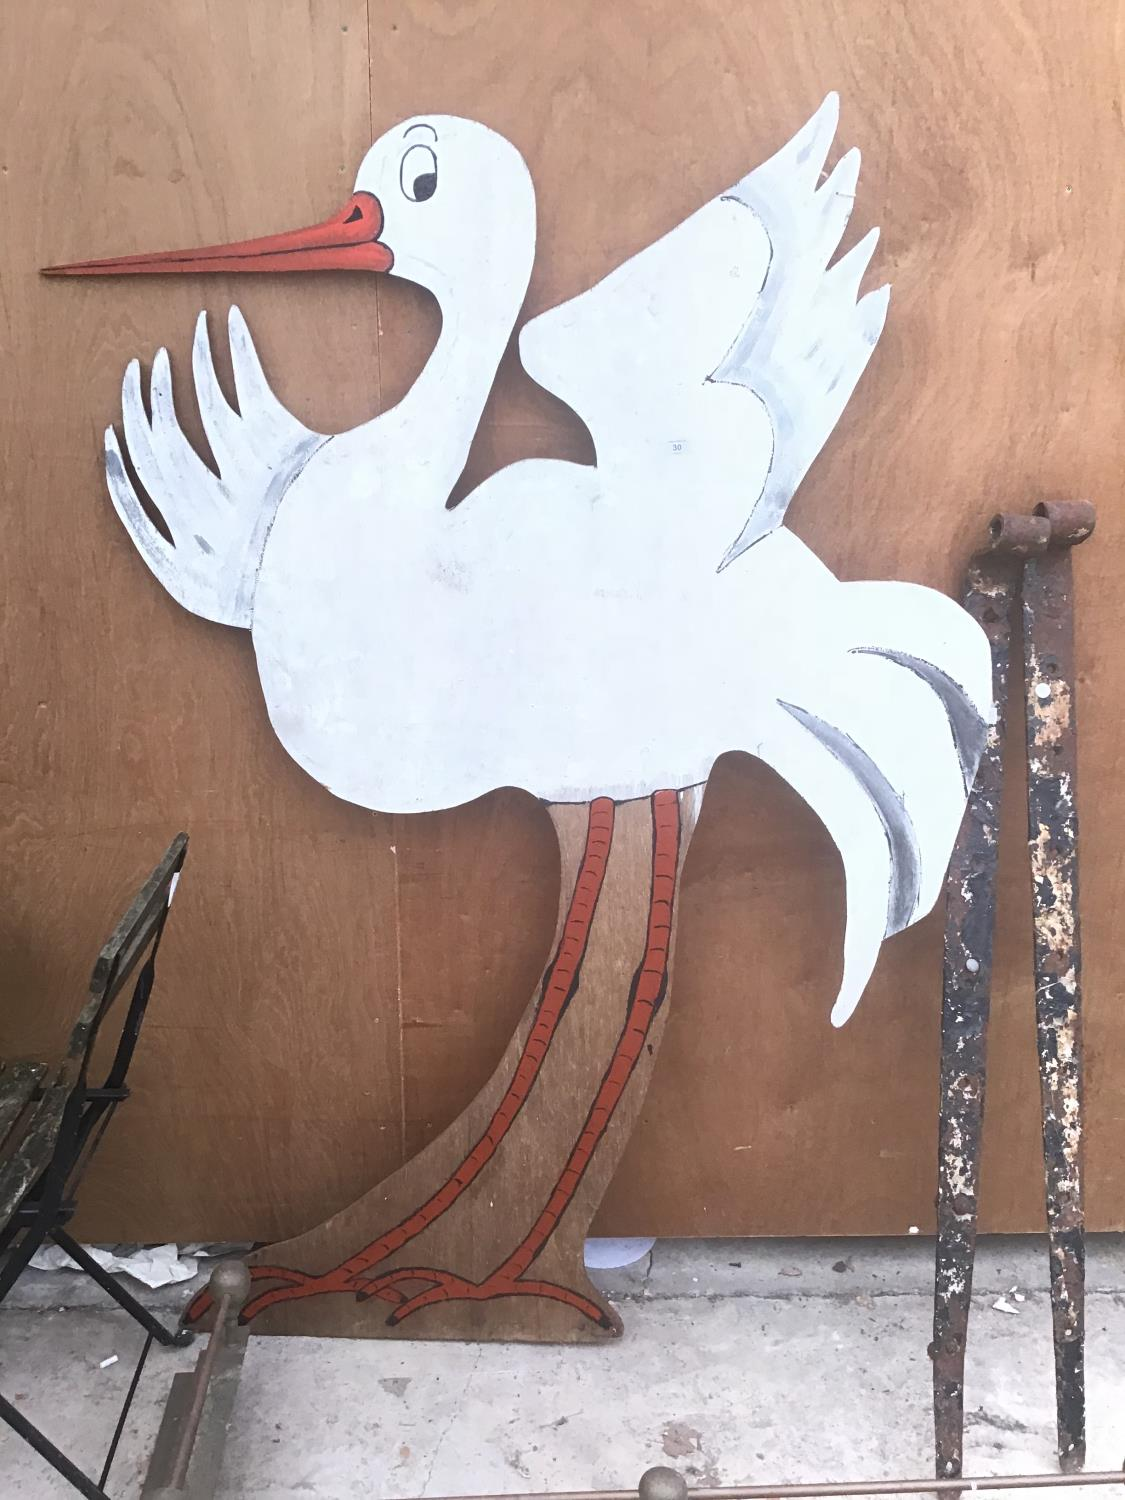 A LARGE WOODEN PAINTED CUT OUT OF A STORK